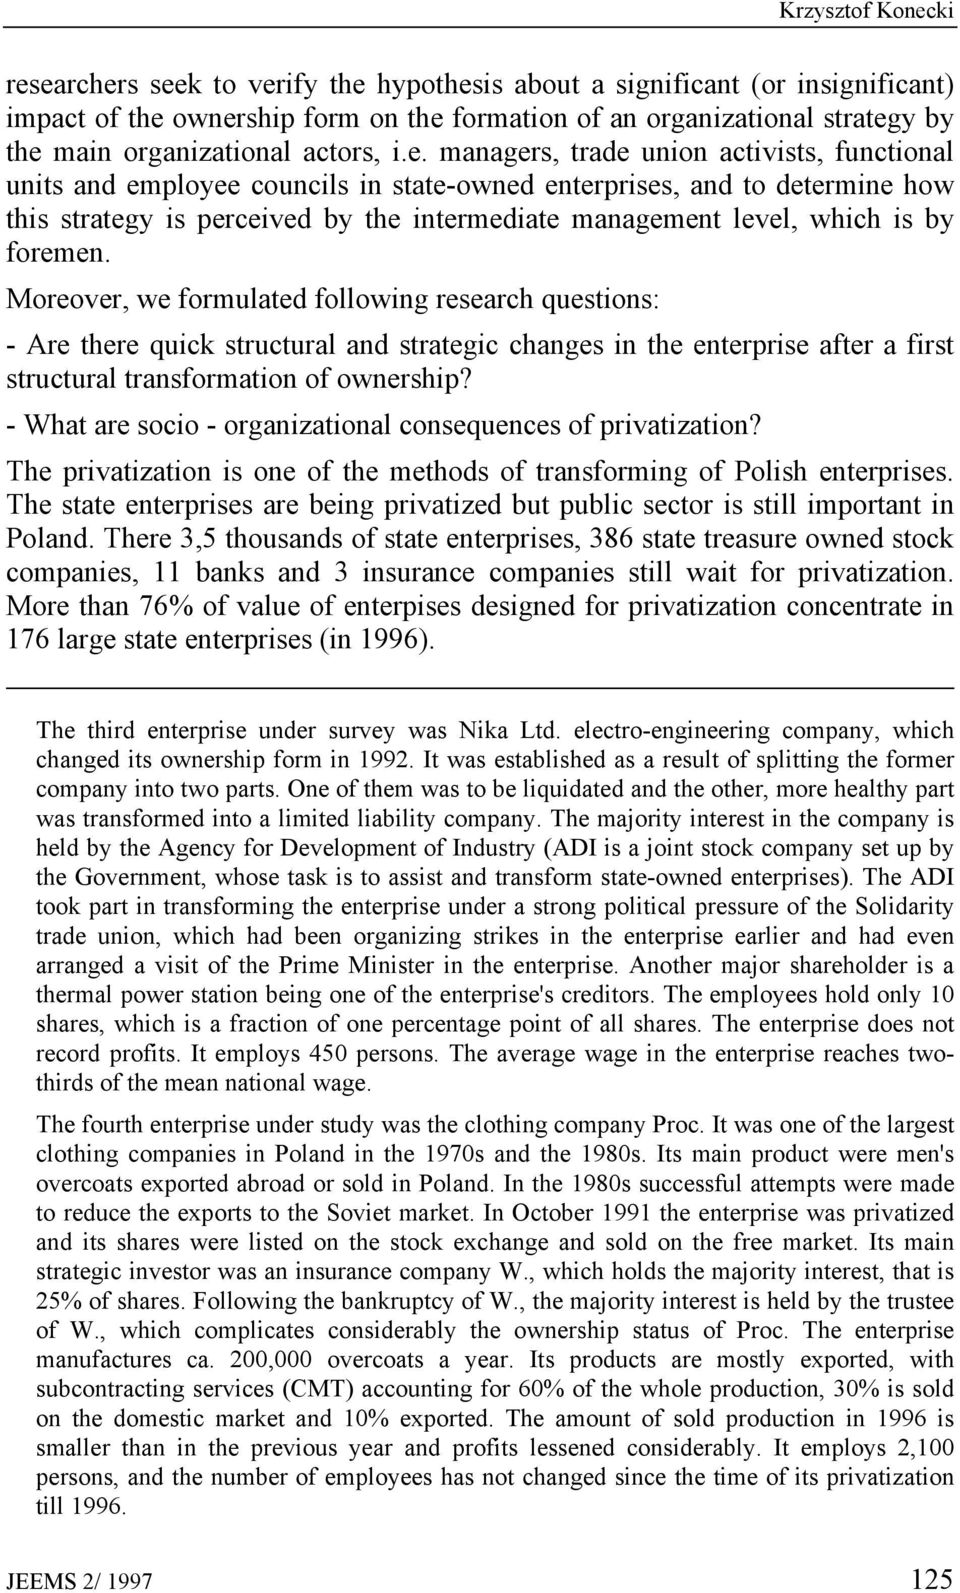 managers, trade union activists, functional units and employee councils in state-owned enterprises, and to determine how this strategy is perceived by the intermediate management level, which is by